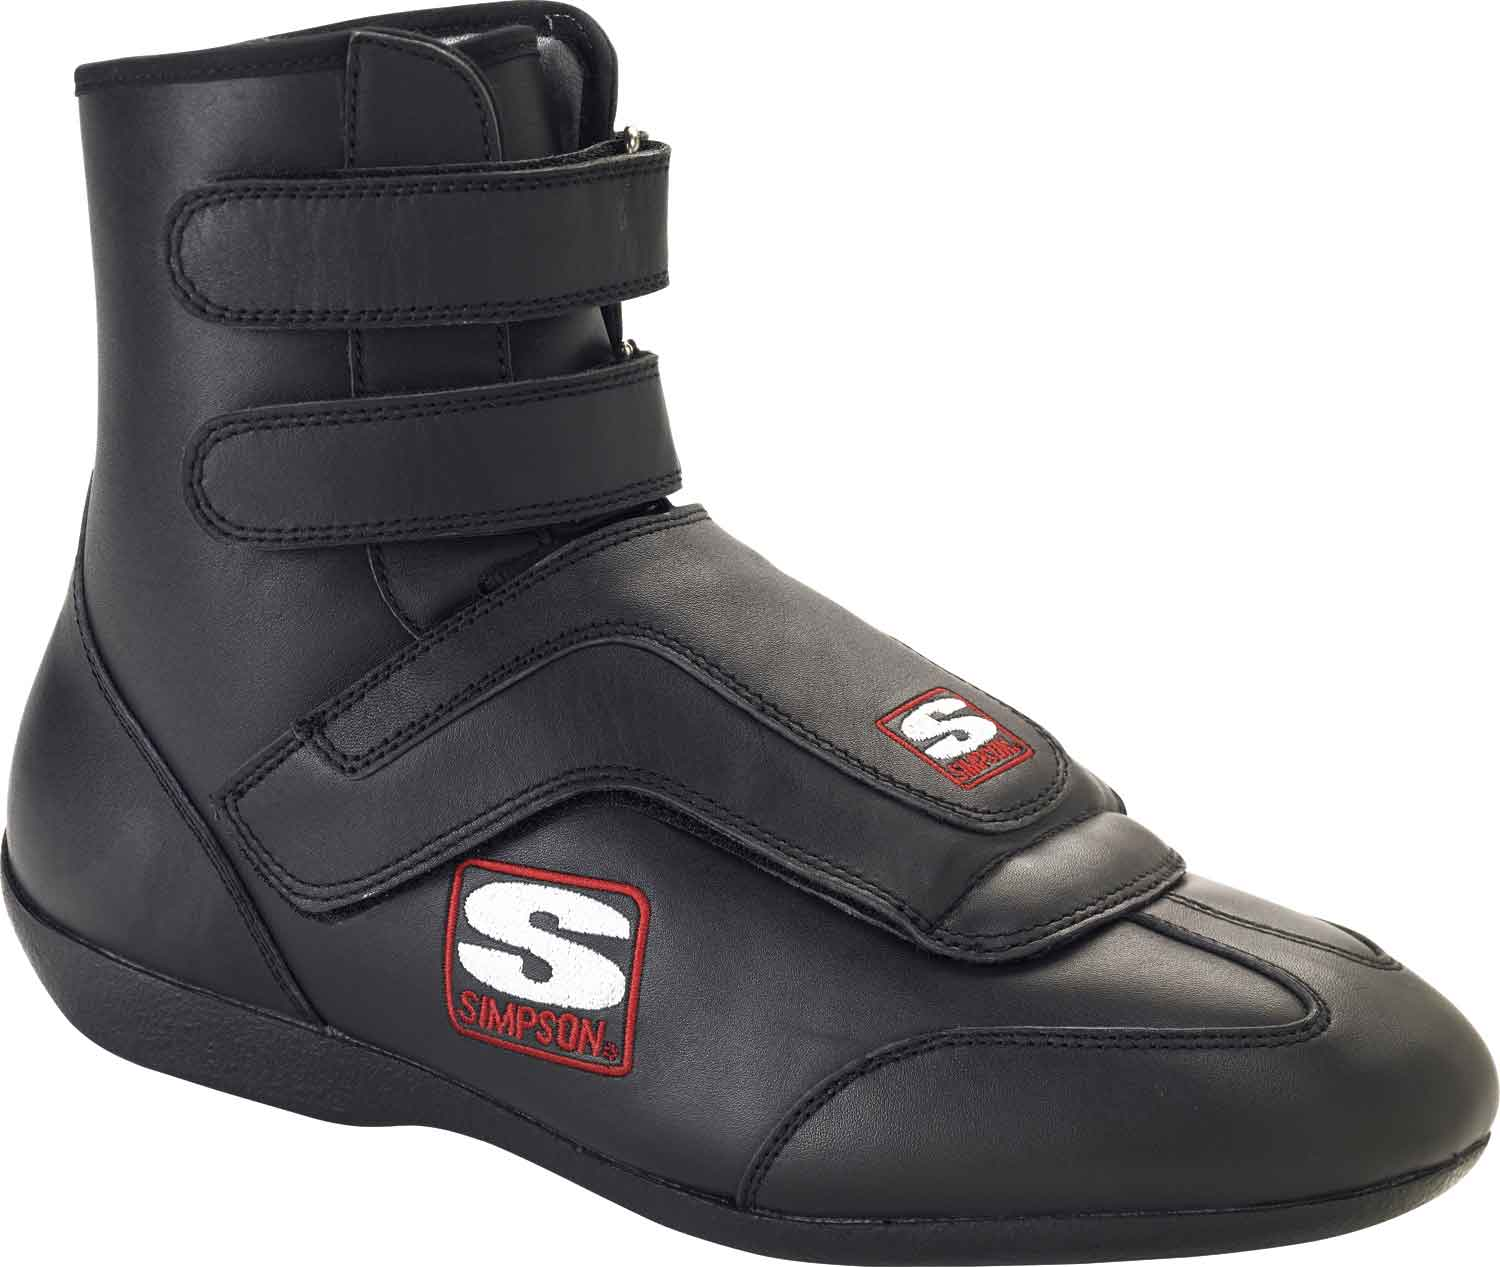 Simpson Stealth Driving Shoe